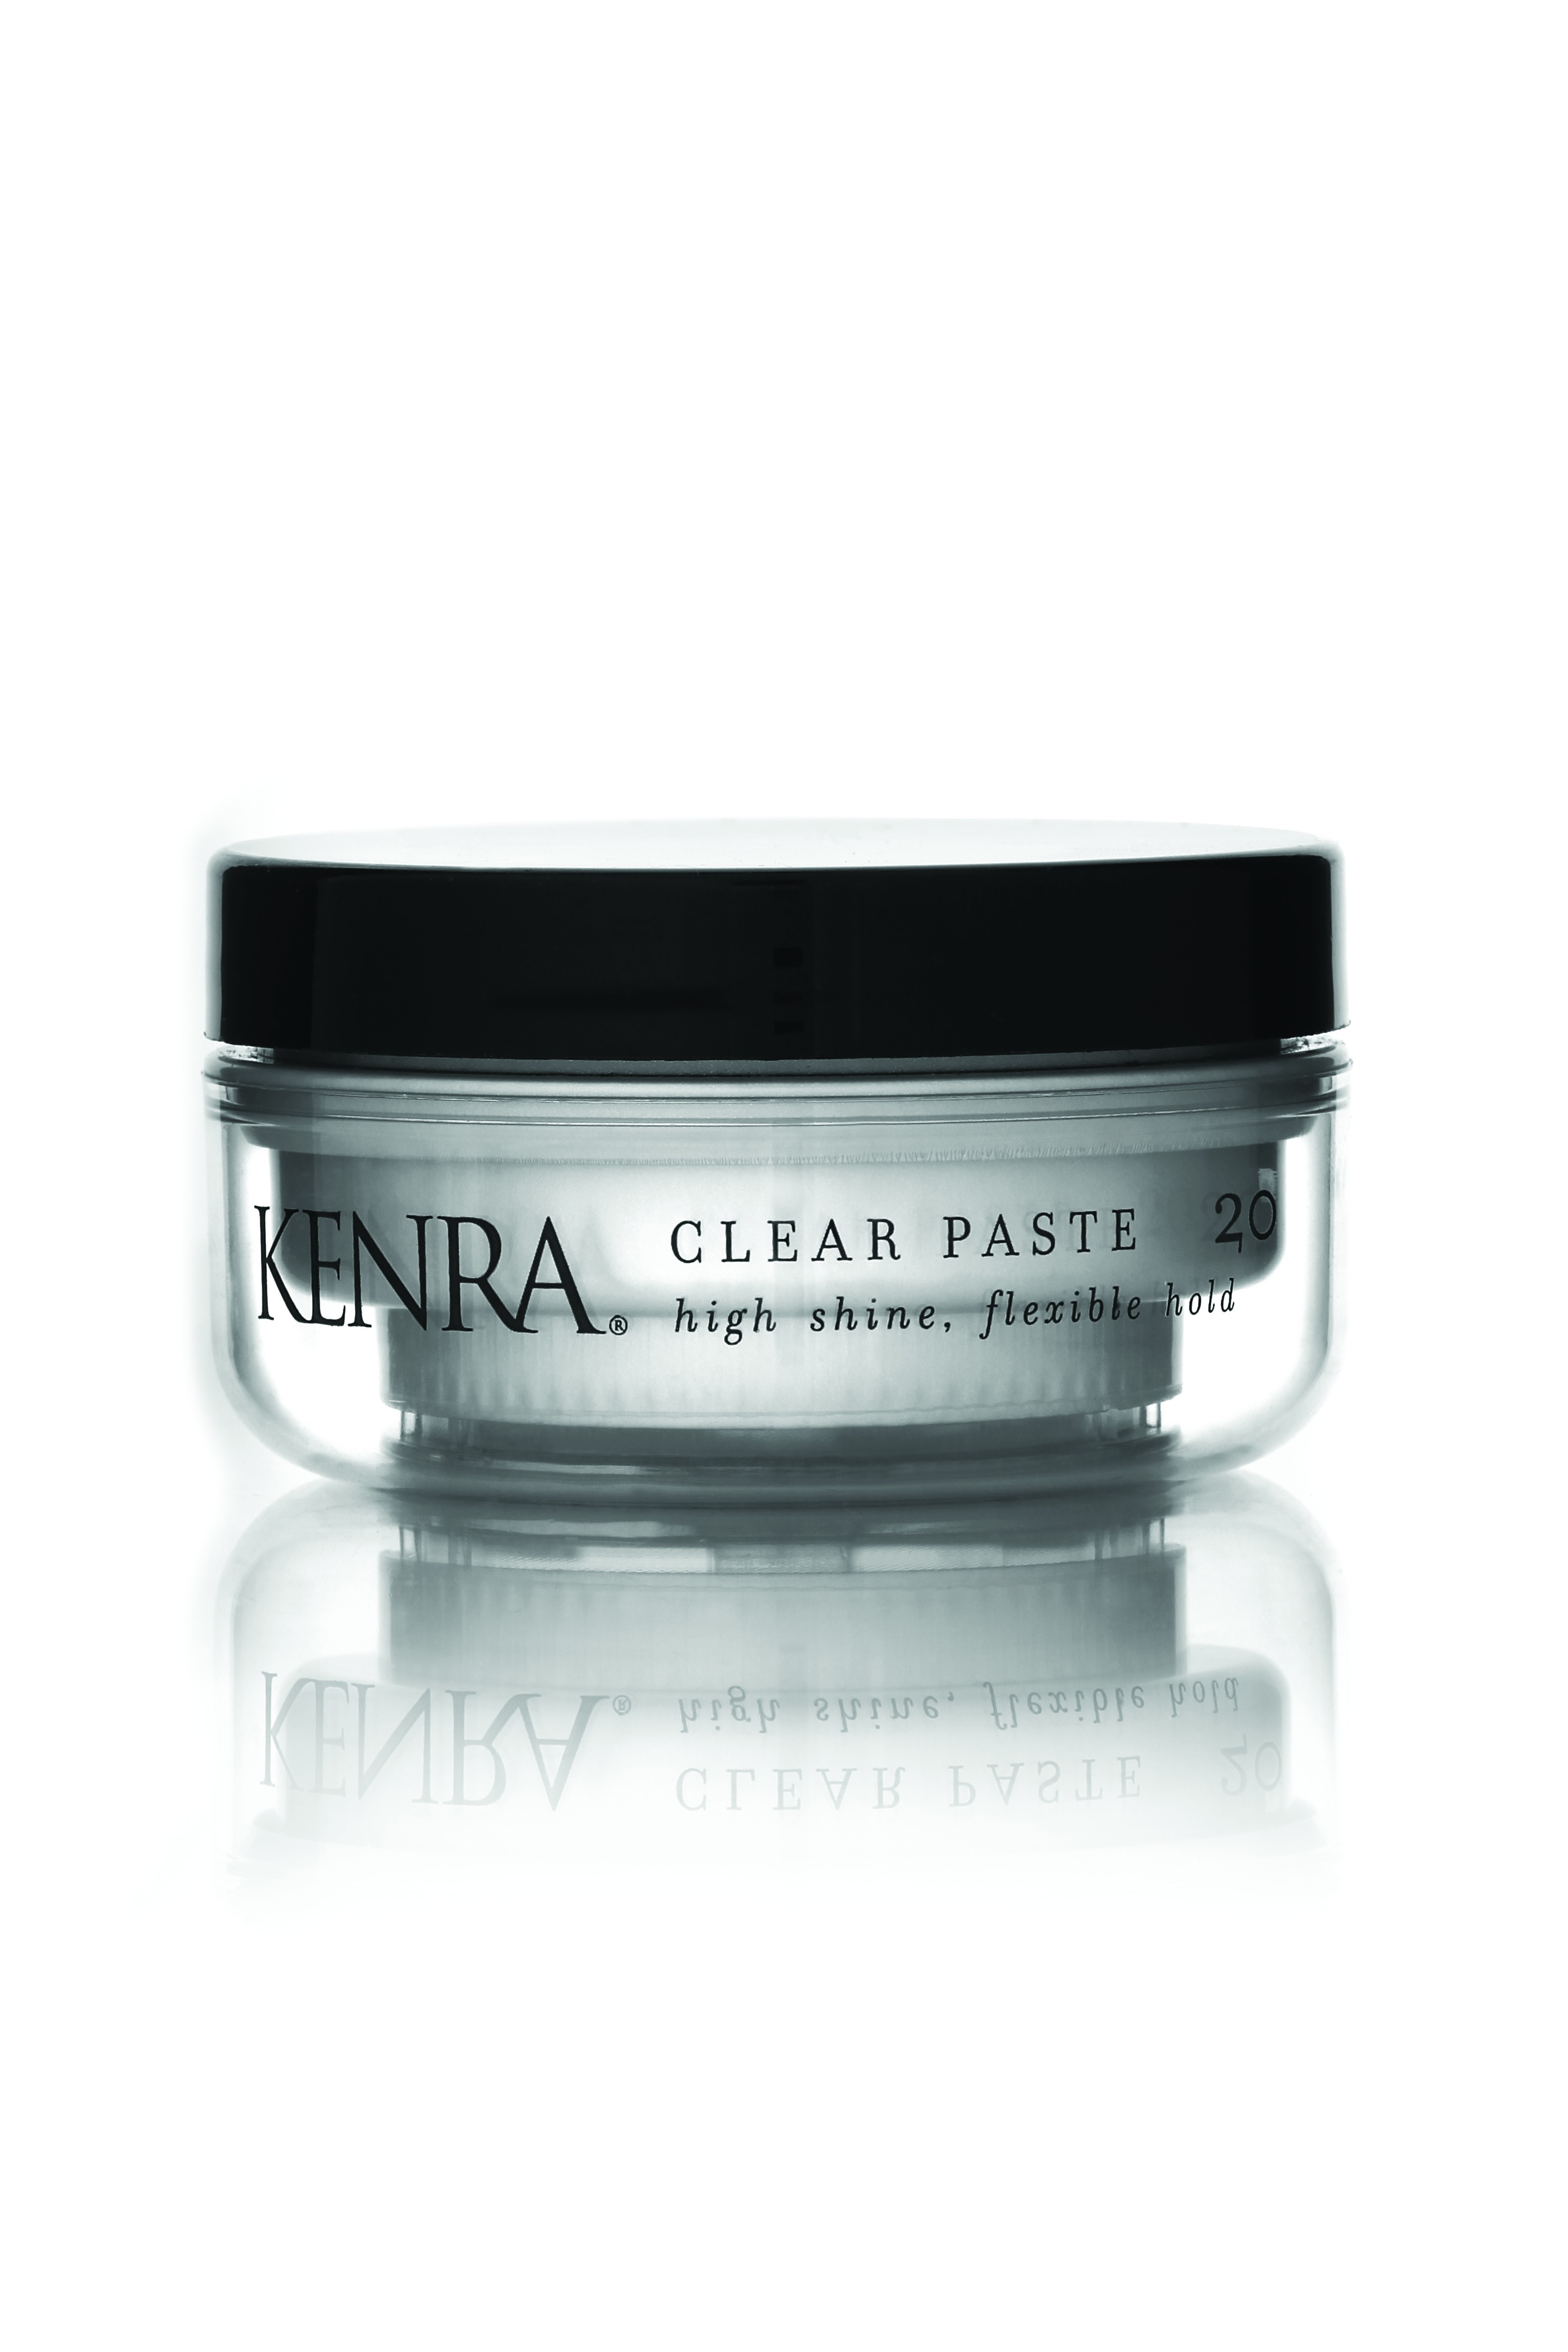 Kenra Clear Paste